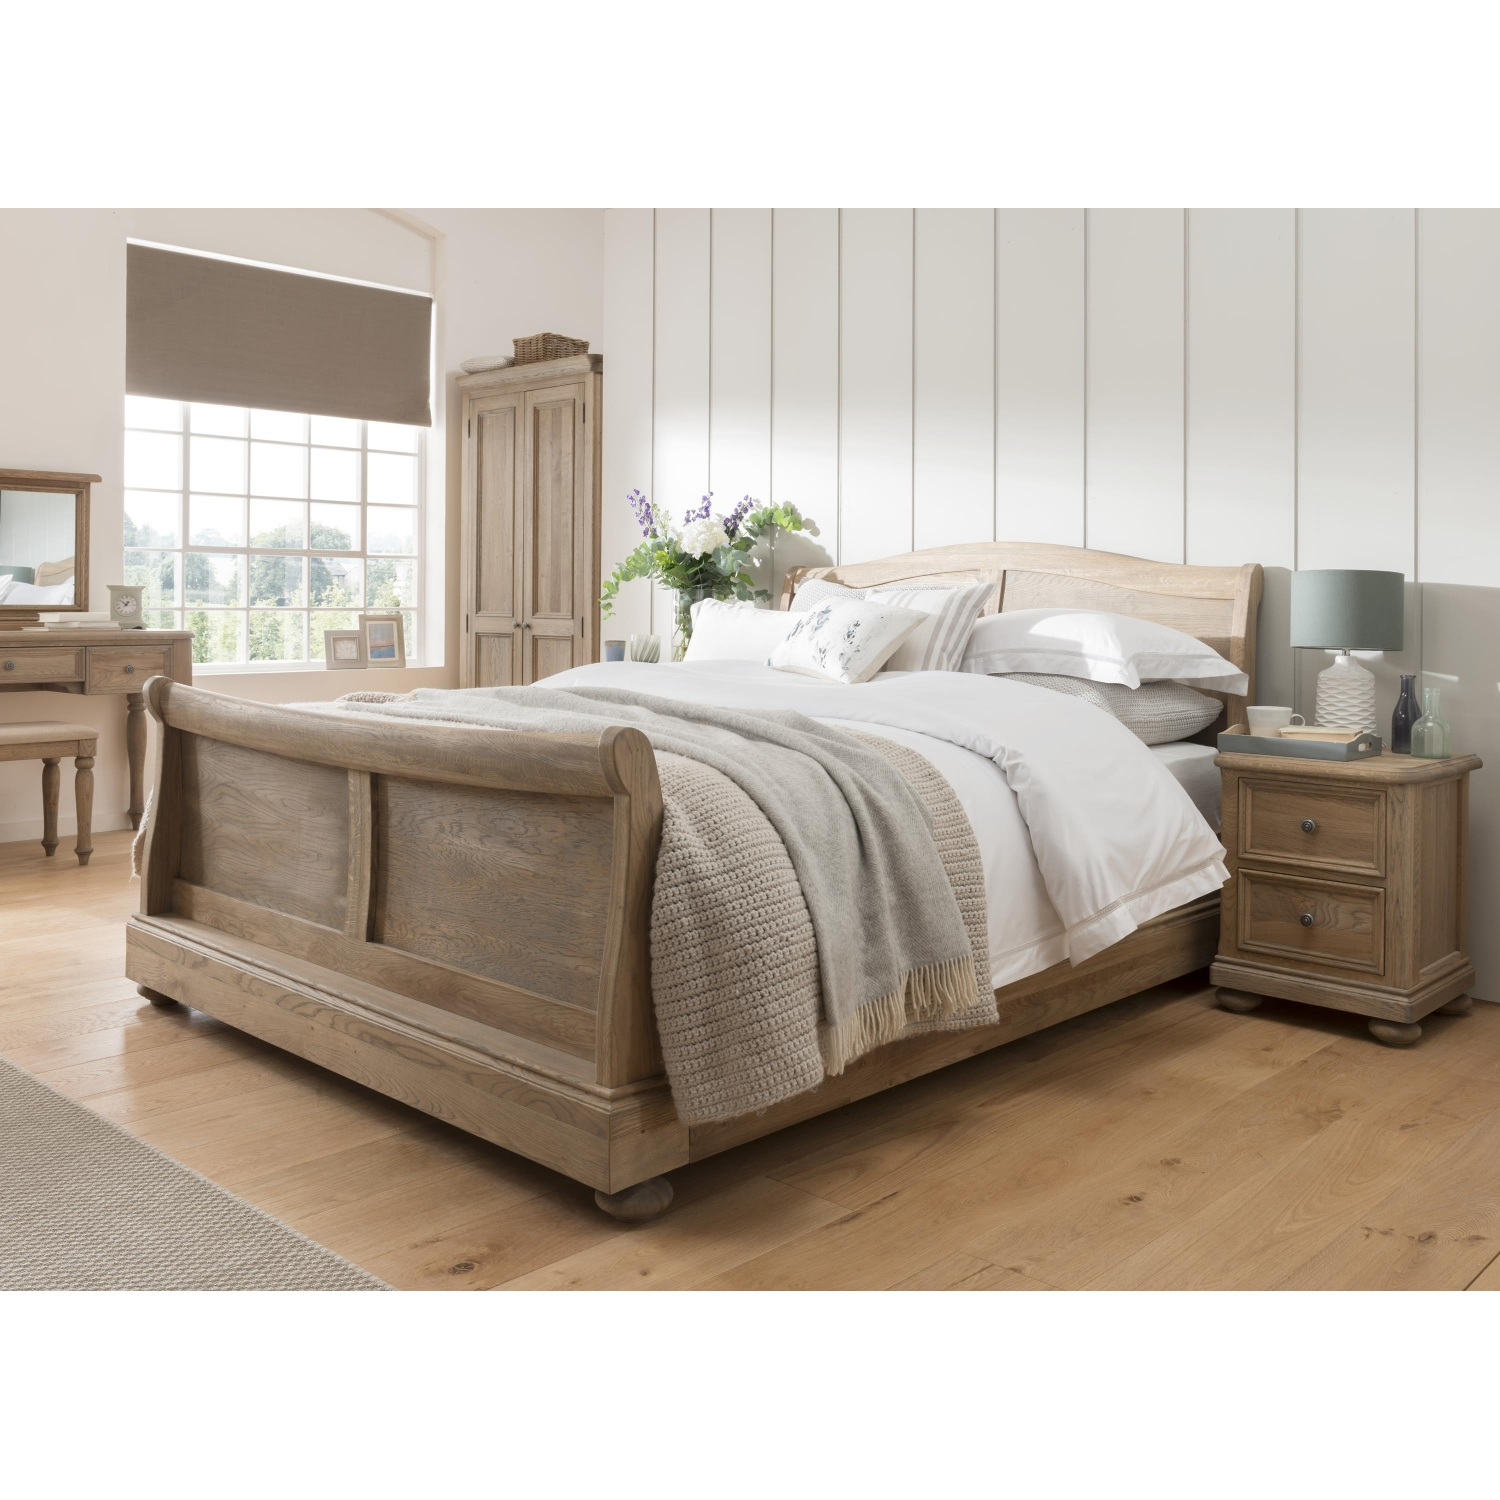 Grayson Solid Oak Bedroom Furniture Double Sleigh Bed Ebay